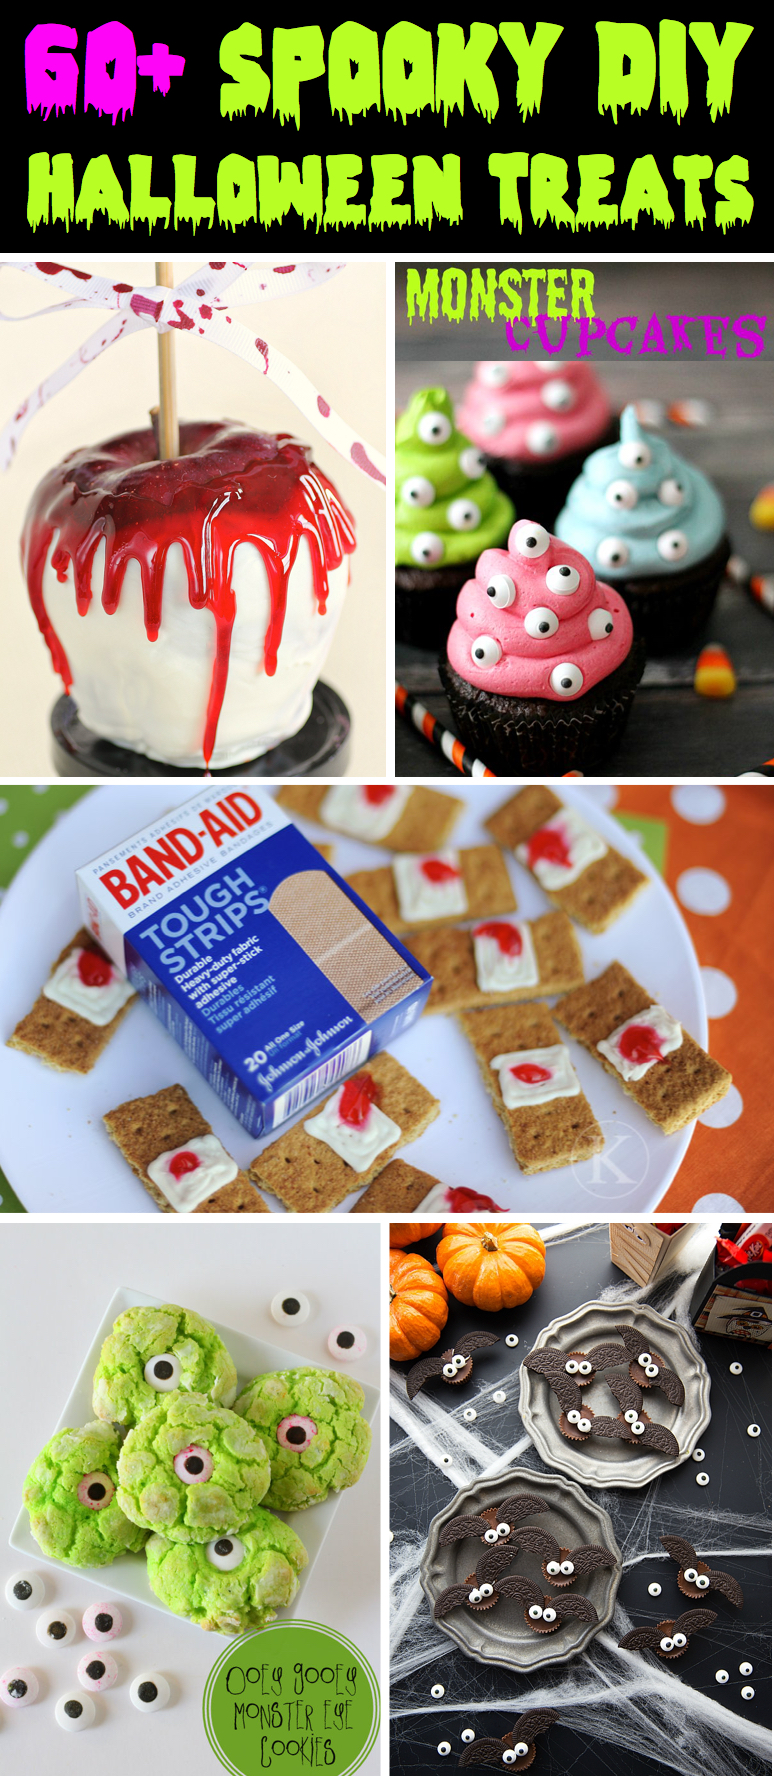 60-easy-and-spooky-diy-halloween-treats/